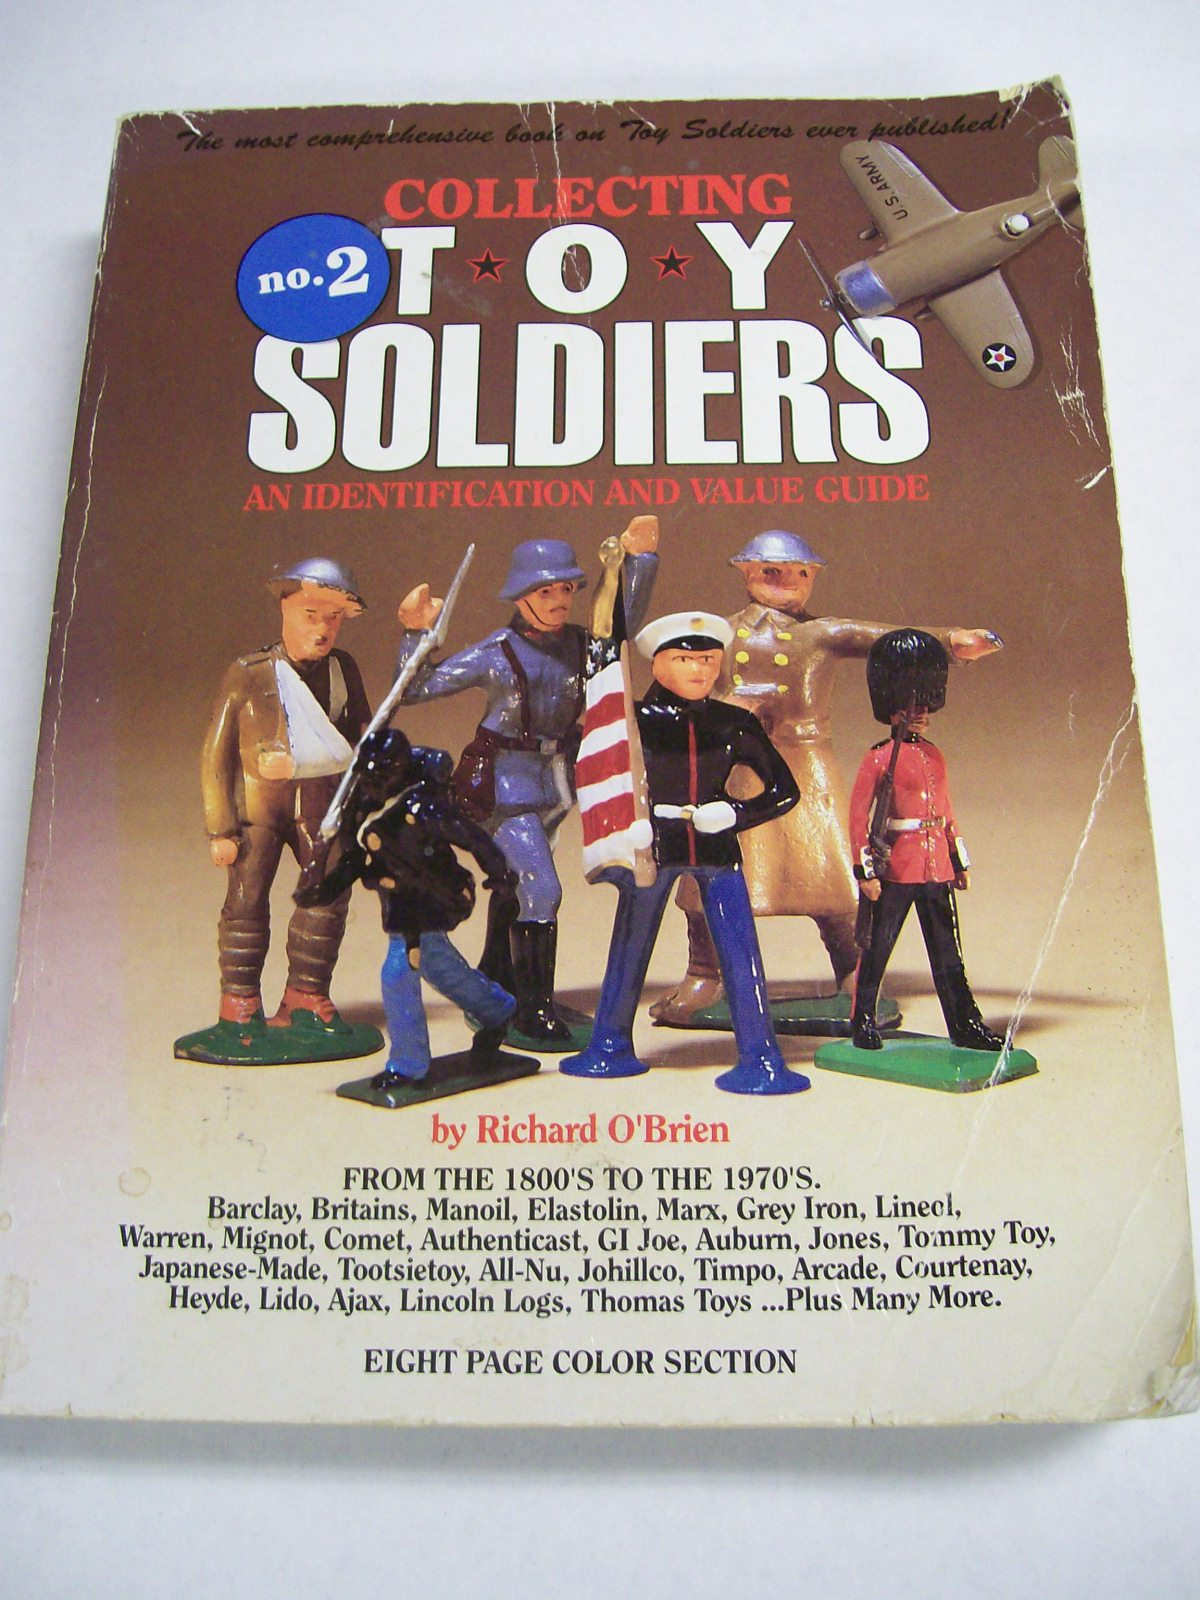 Collecting Toy Soldiers N0.2 by Richard O'Brien 627 Pages